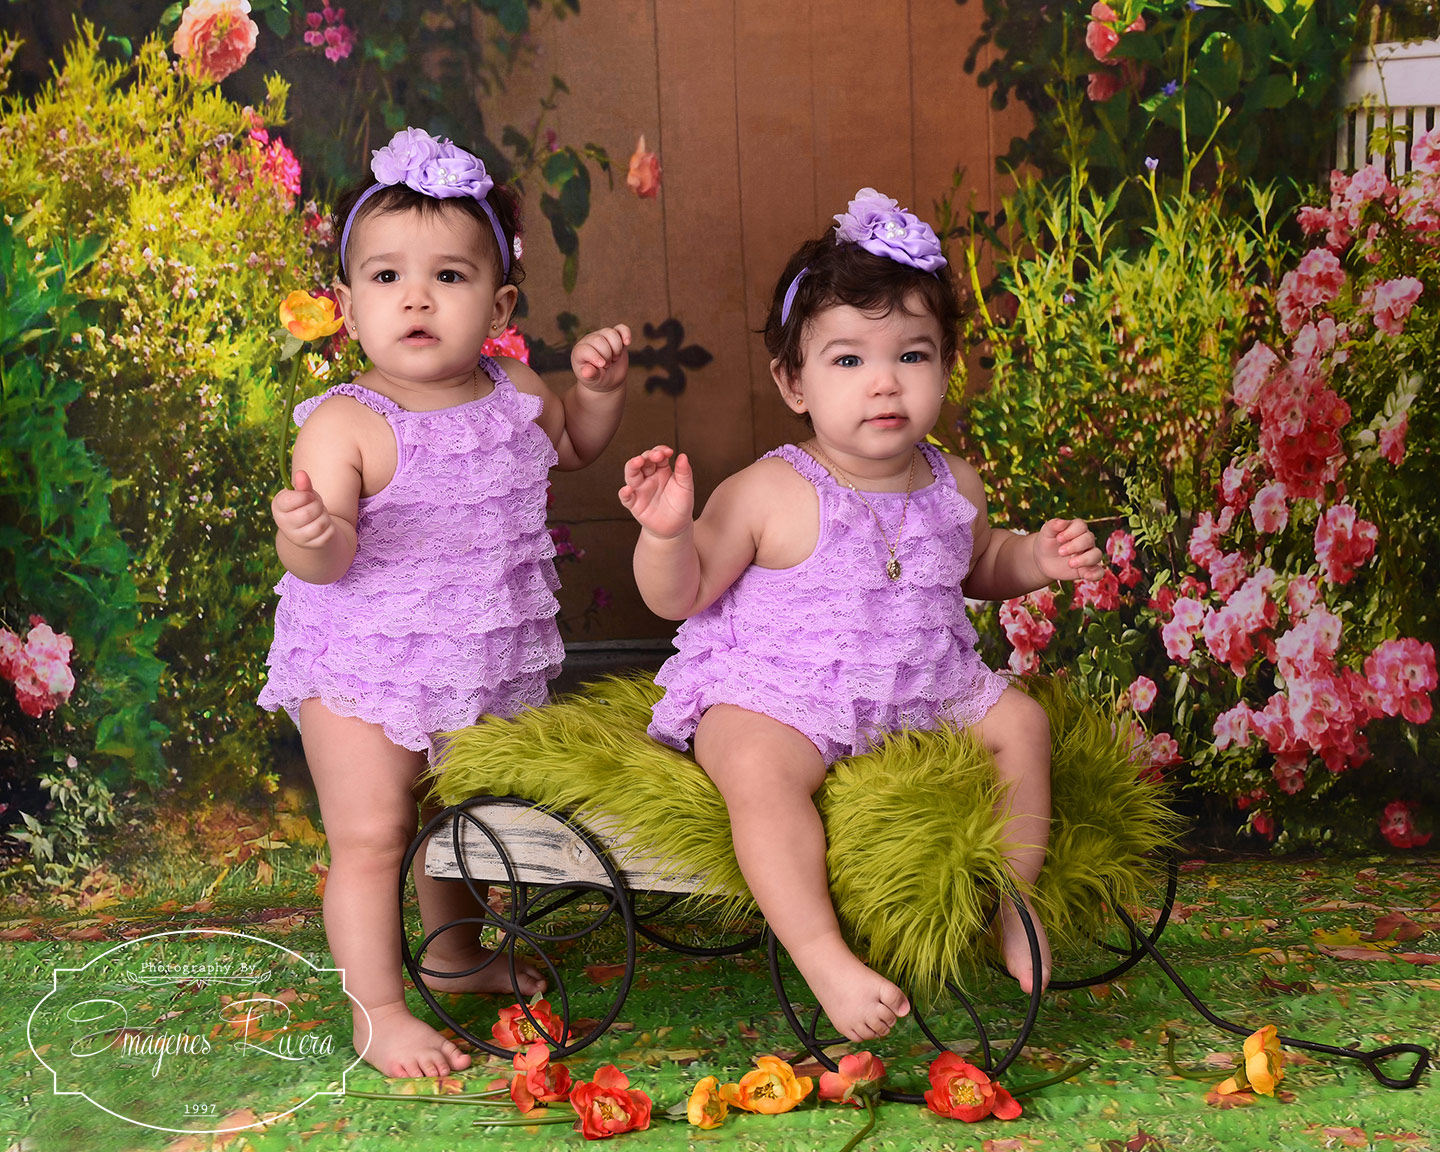 ♥ One year old twins baby portrait studio|Miami children photographer ♥